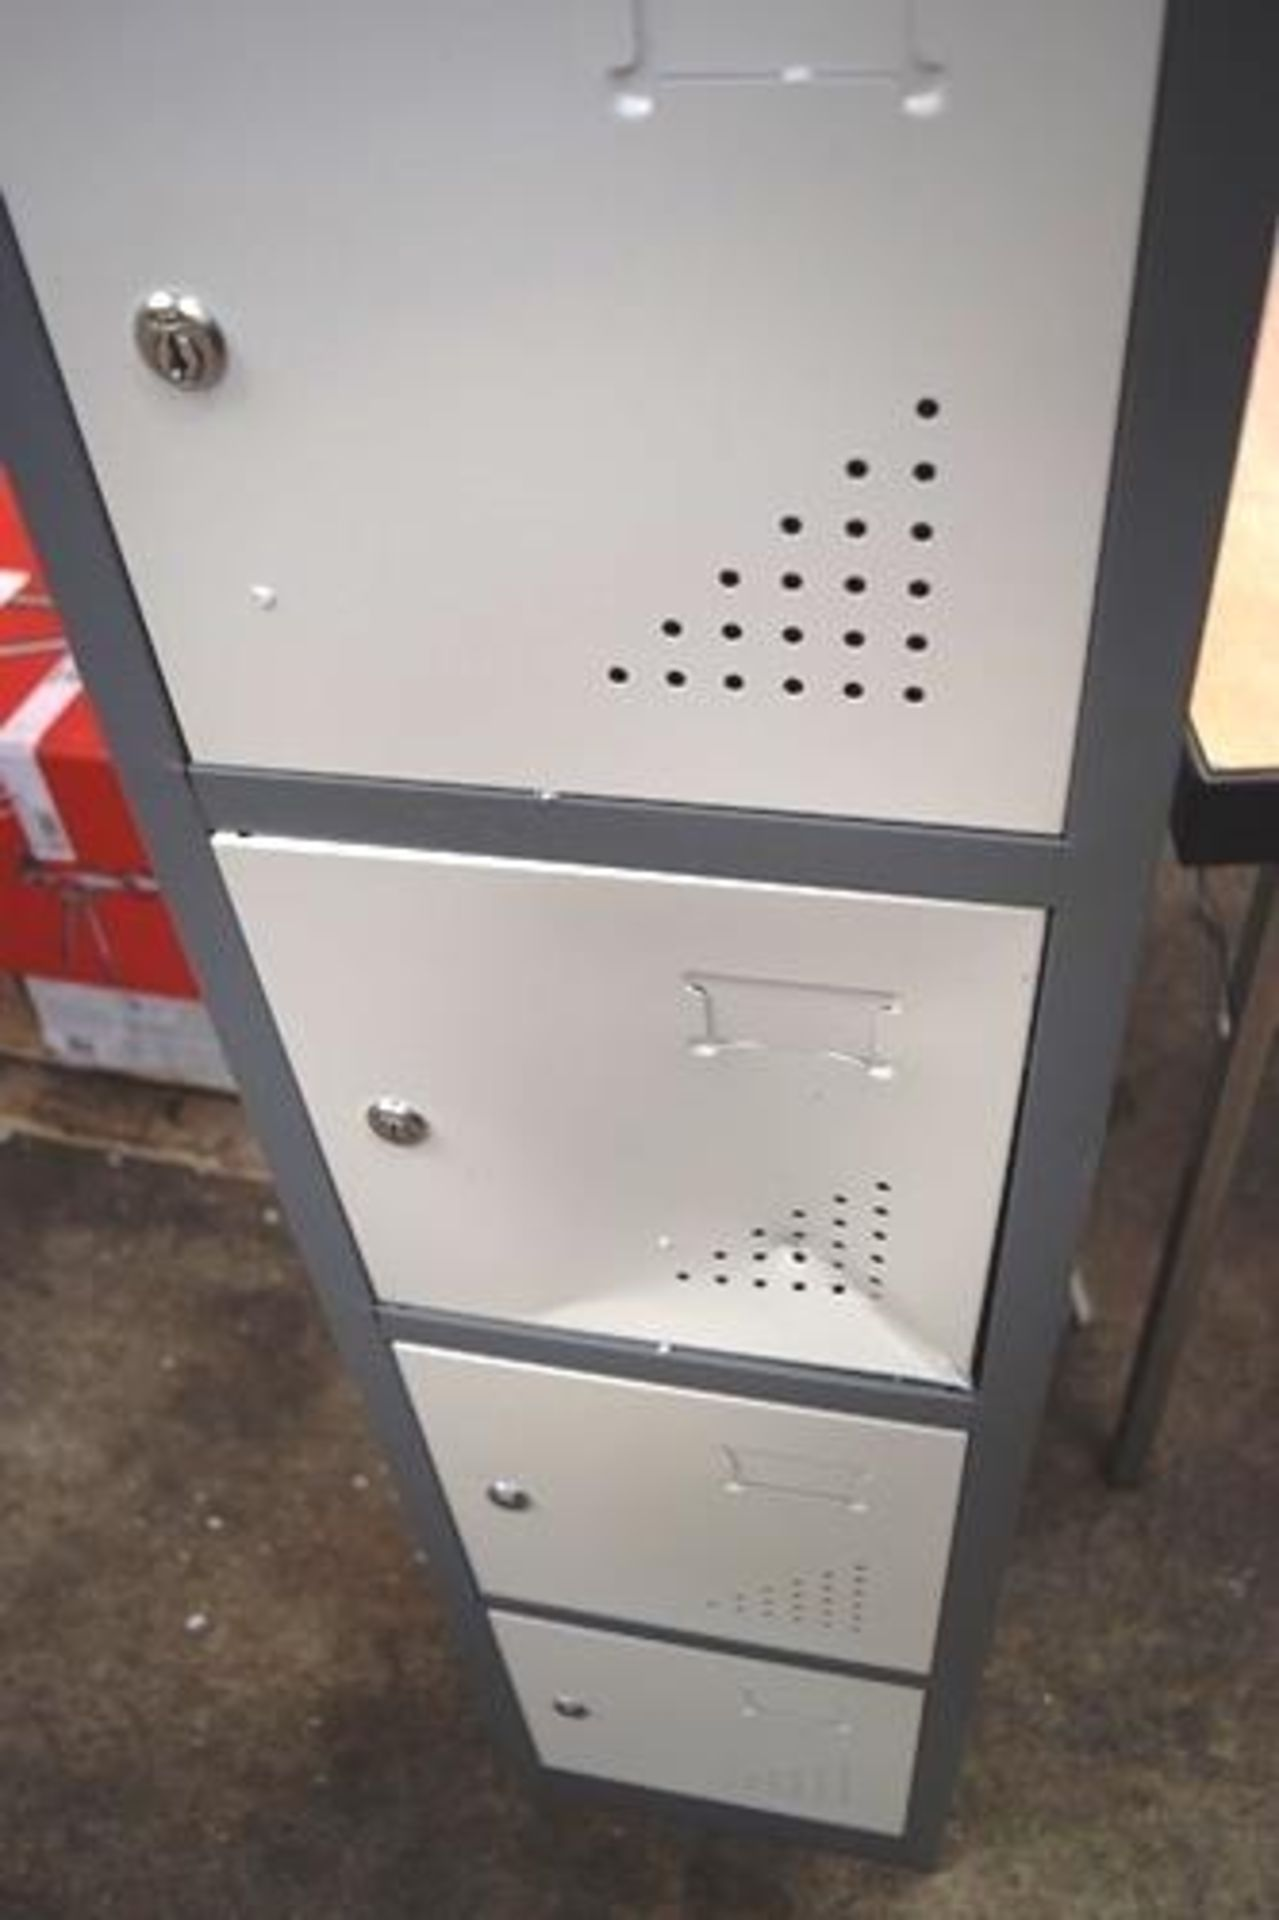 1 x The Workplace Depot Grey metal 6 locker unit, size 300 x 300 x 1800mm - New but with several - Image 2 of 3